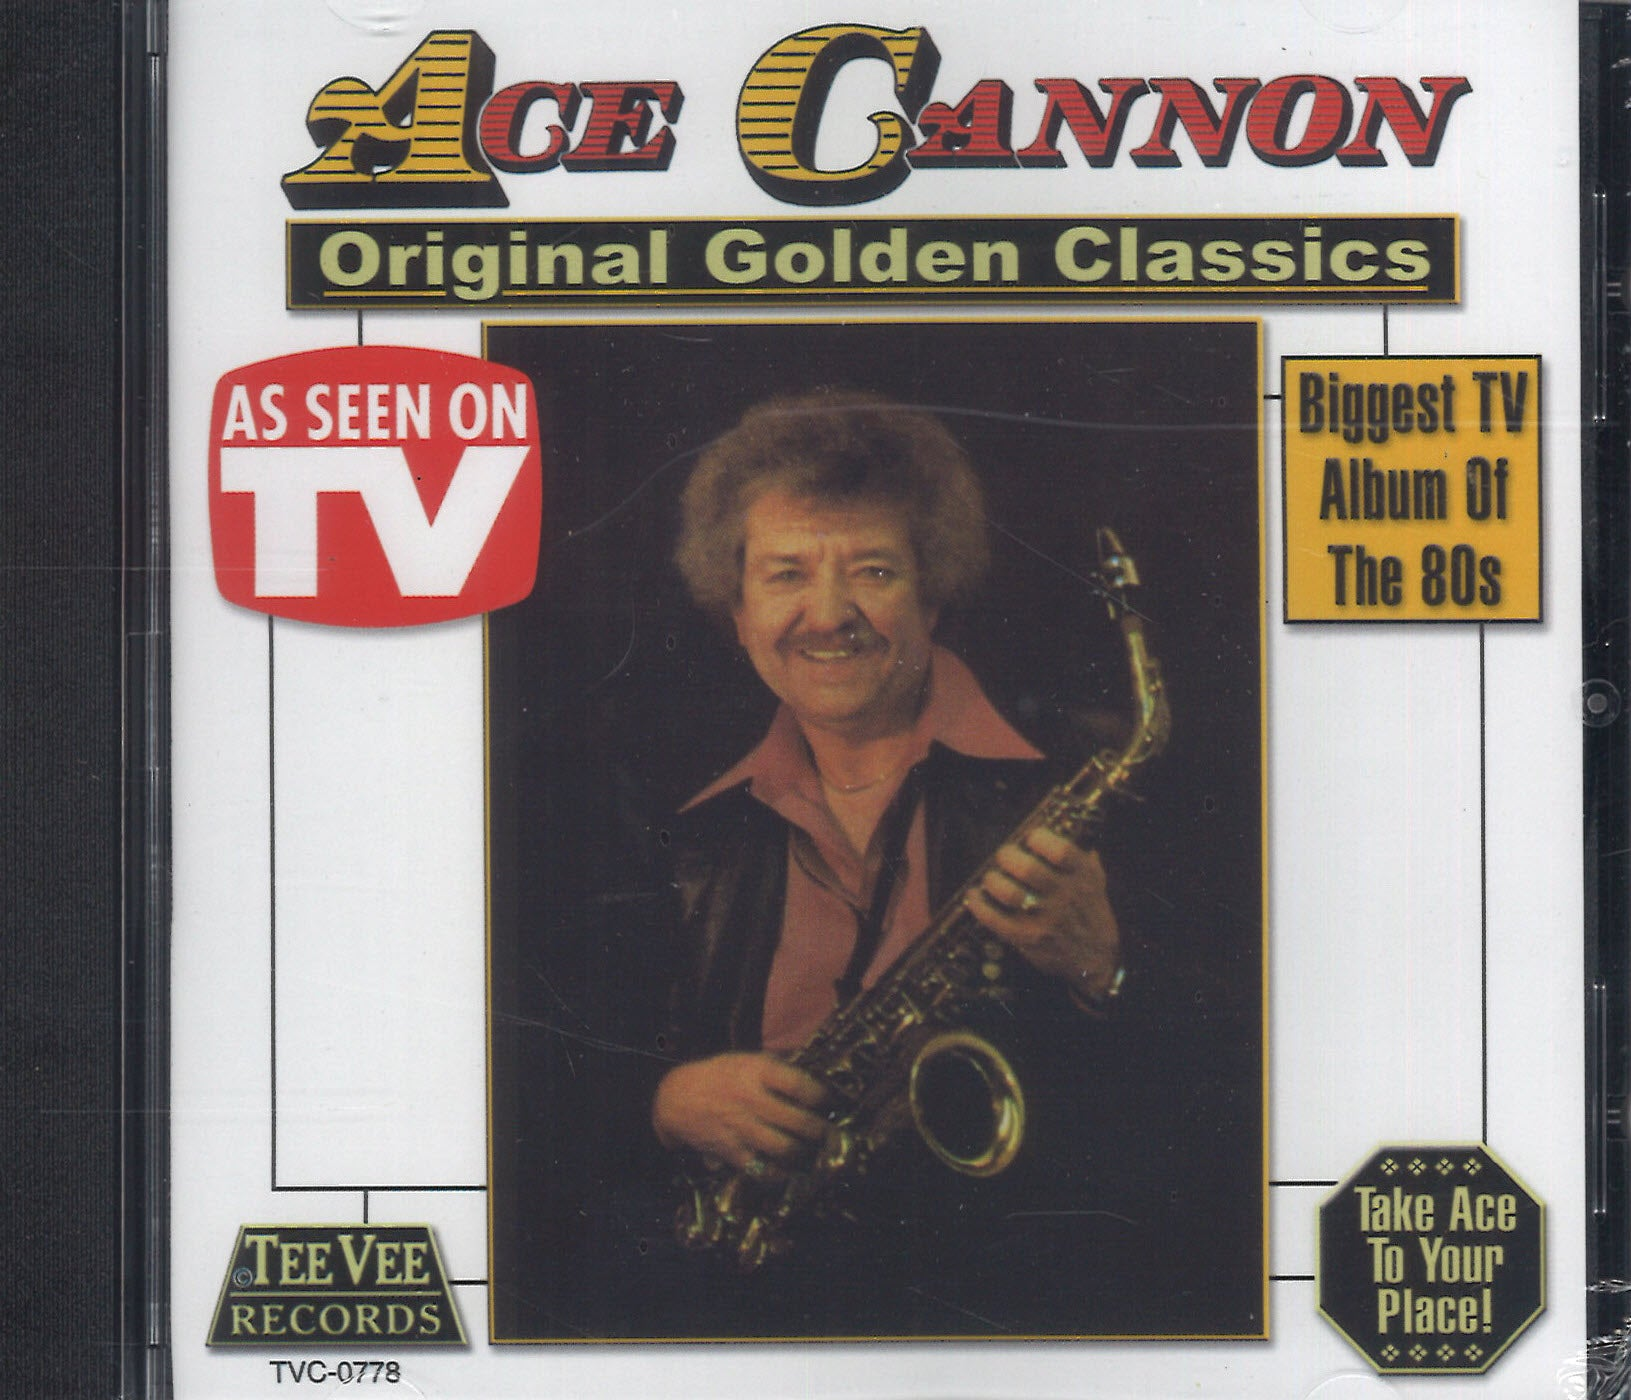 Ace Cannon Original Golden Classics